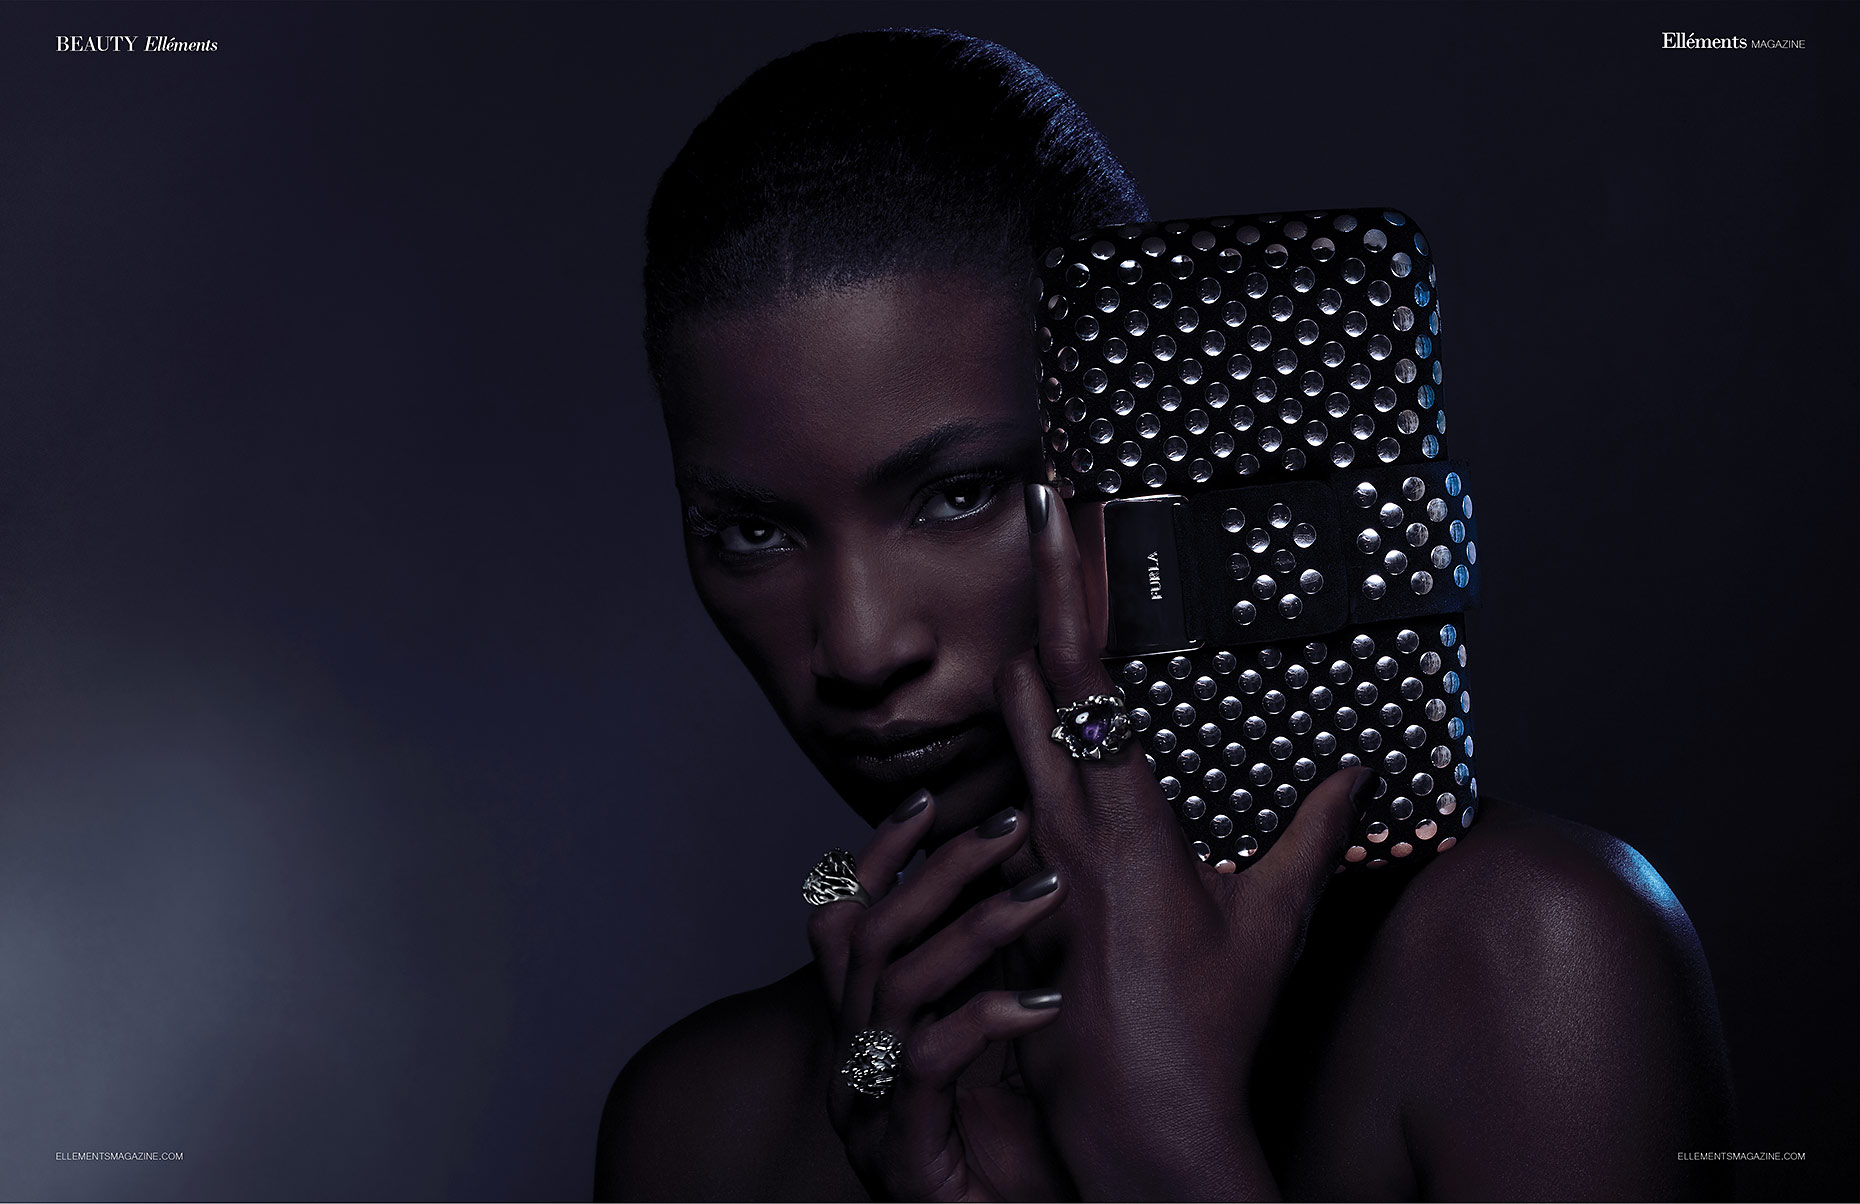 ellements-end-furla-african-model-nails